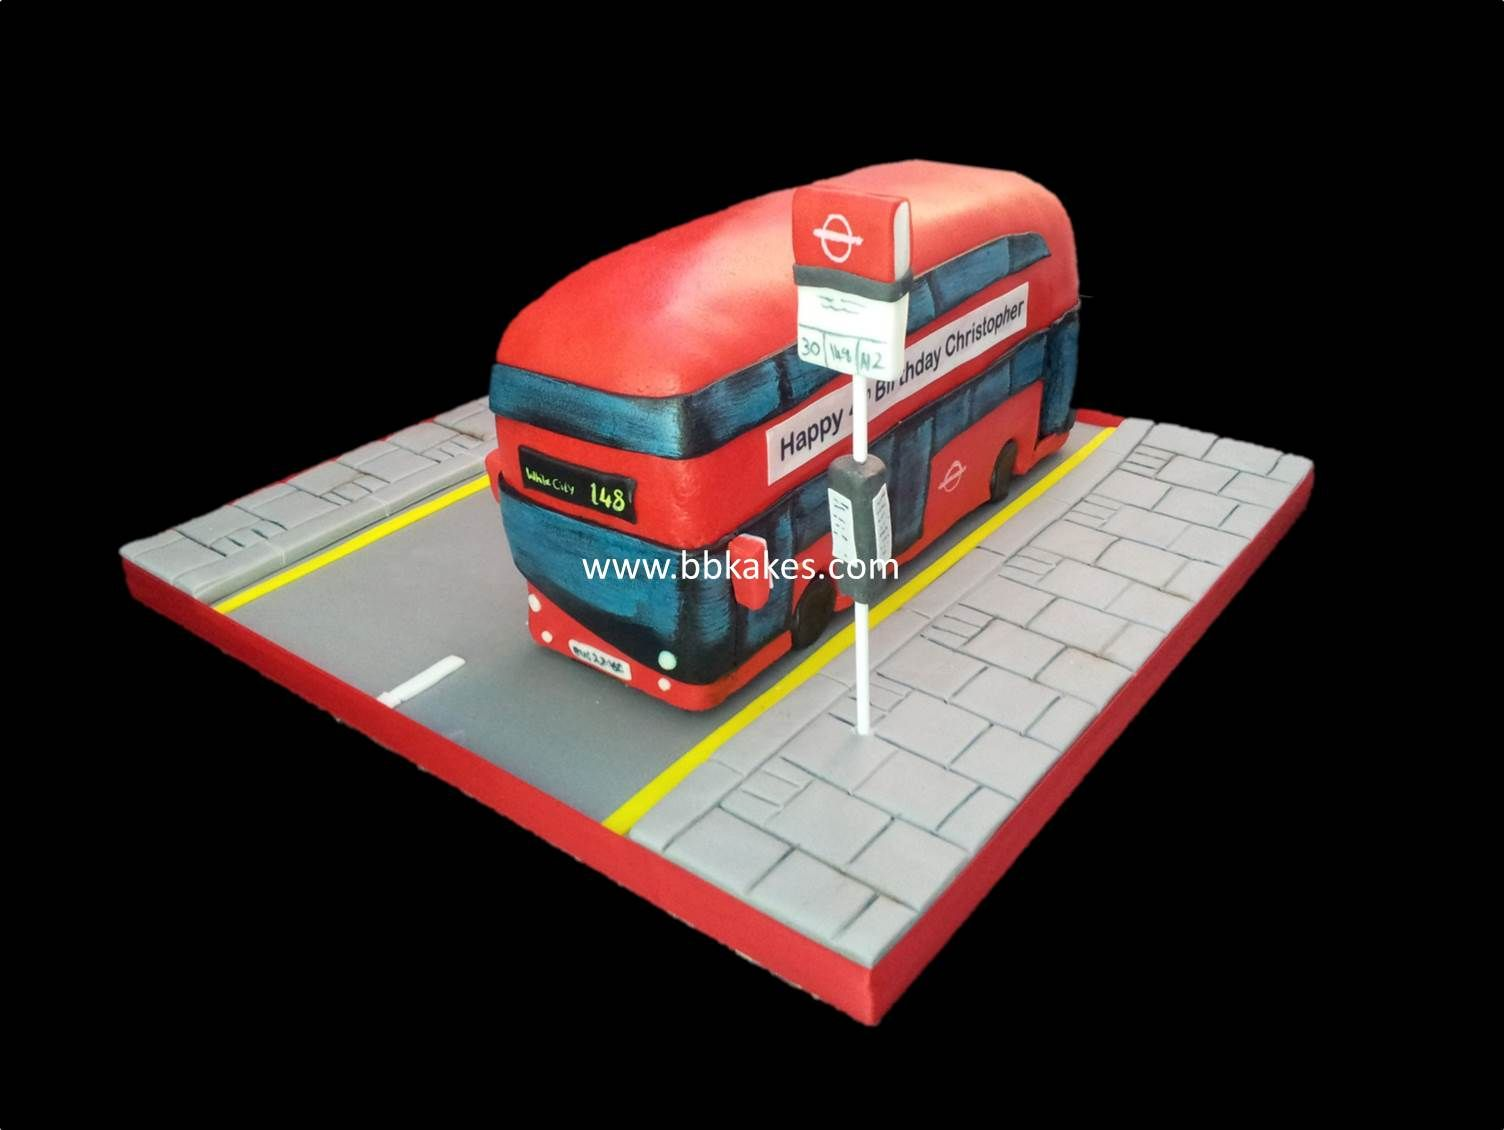 #London #Red #Route #master #bus #cake